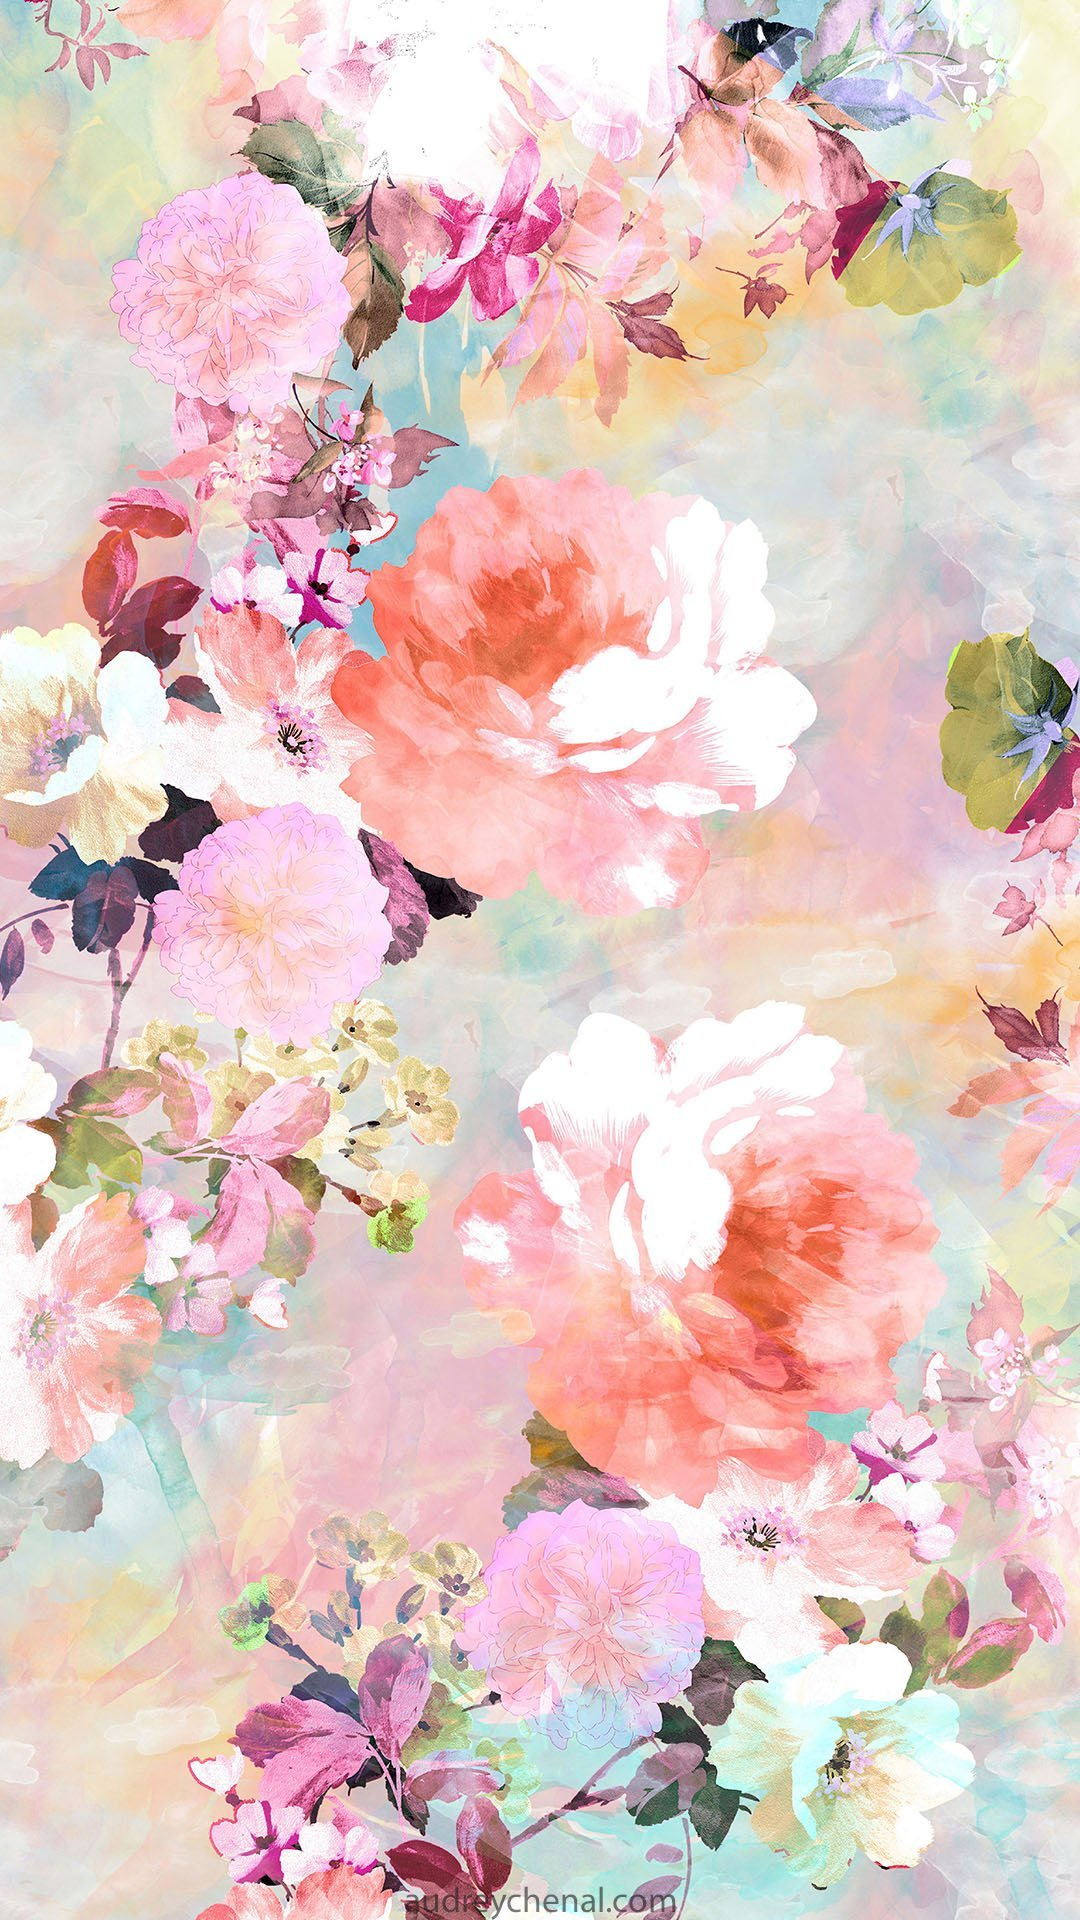 Floral Watercolor Pastel Pattern By Audrey Chenal Web Audrey Chenal